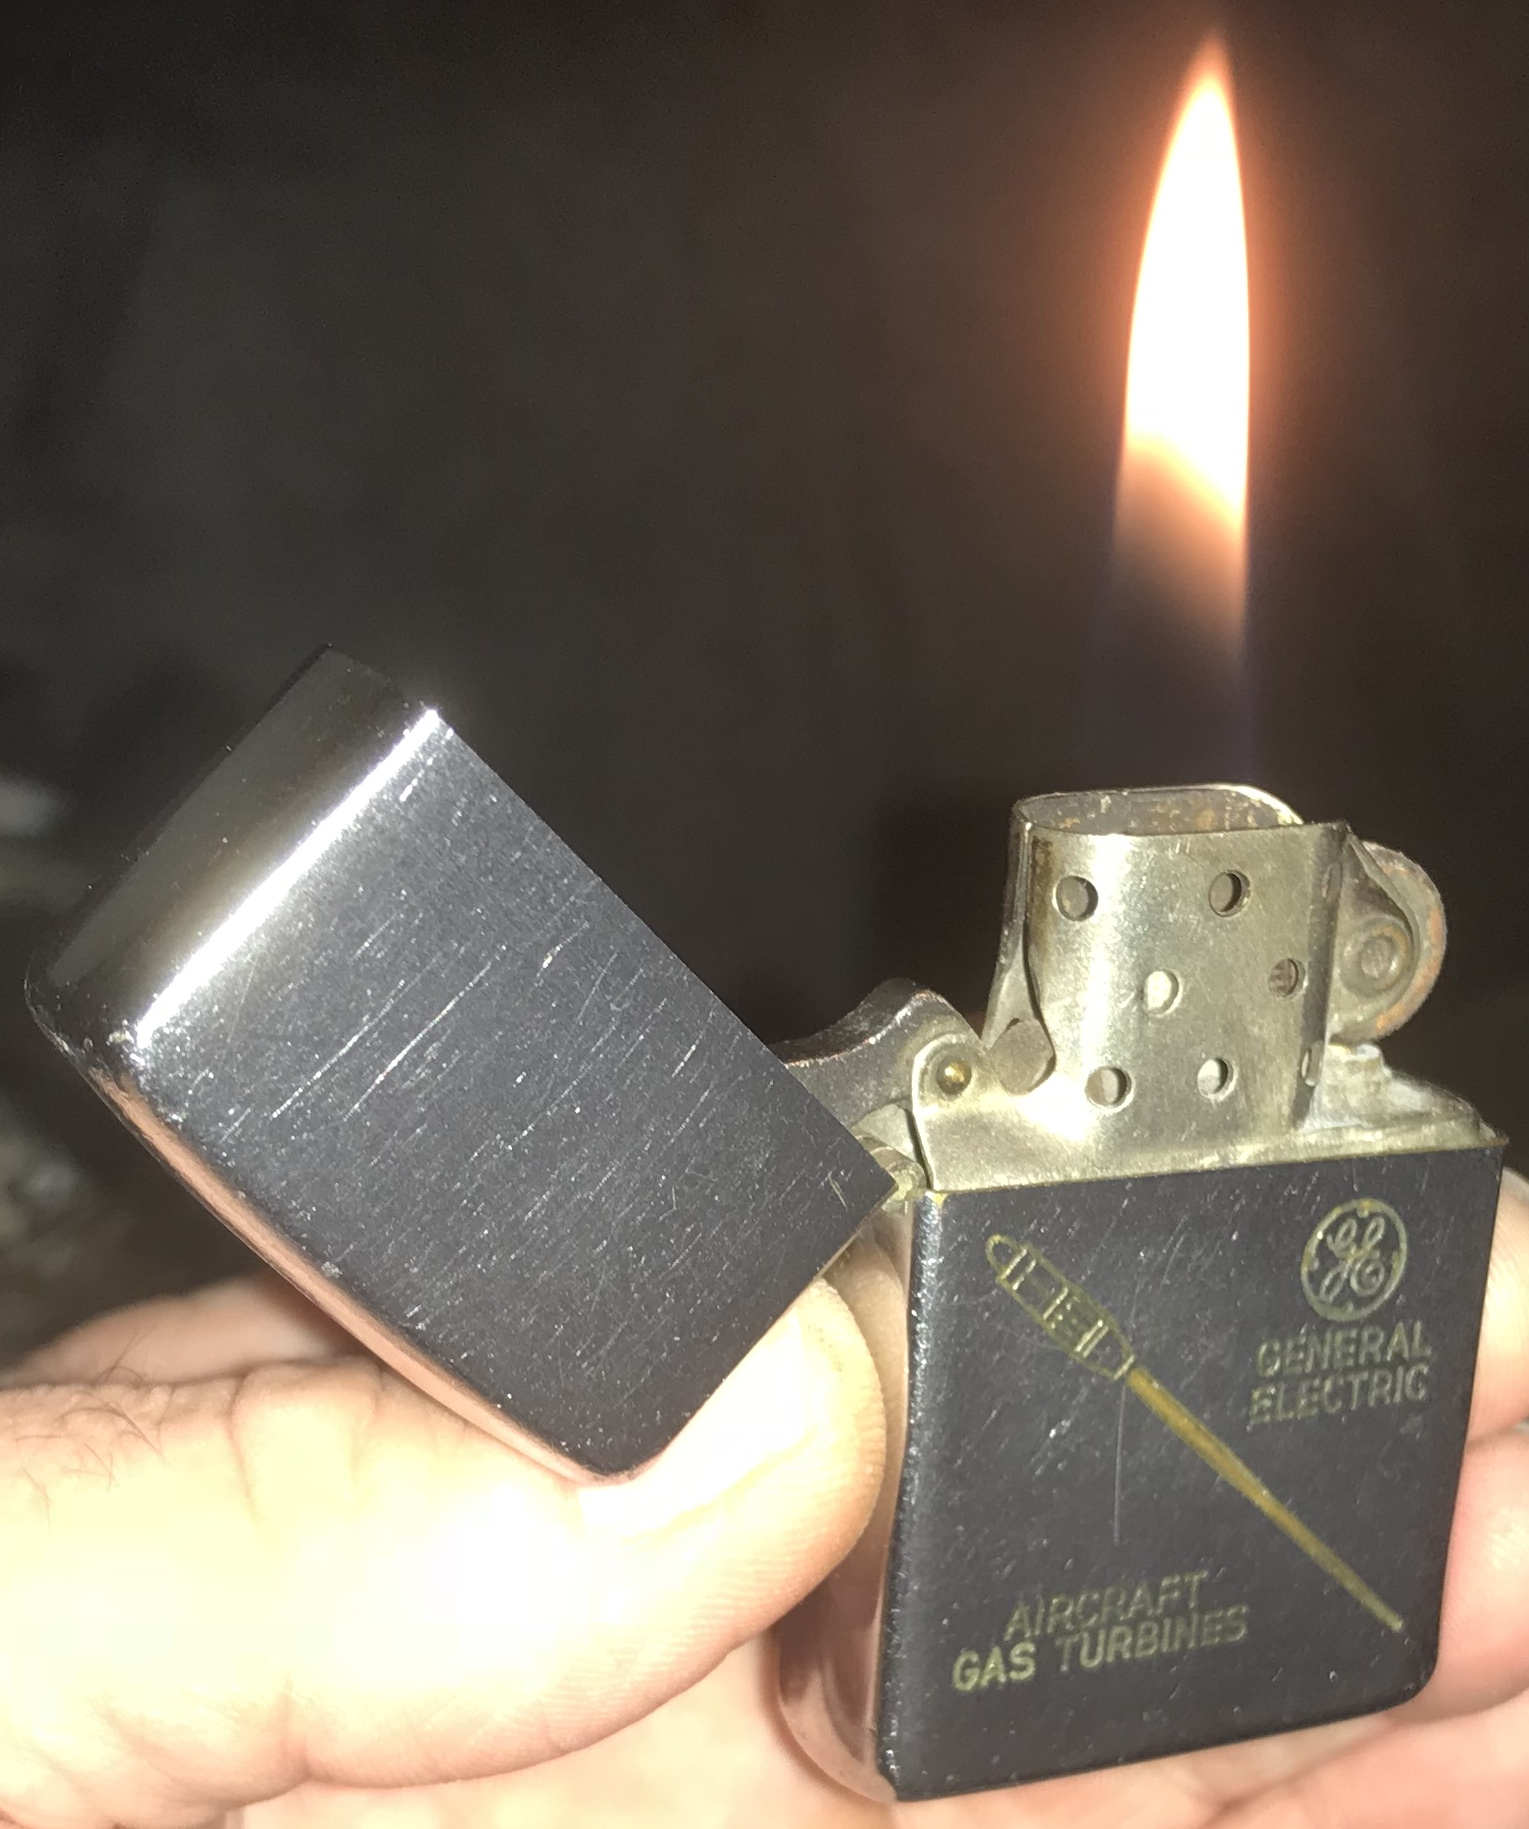 19502 General Electric Zippo